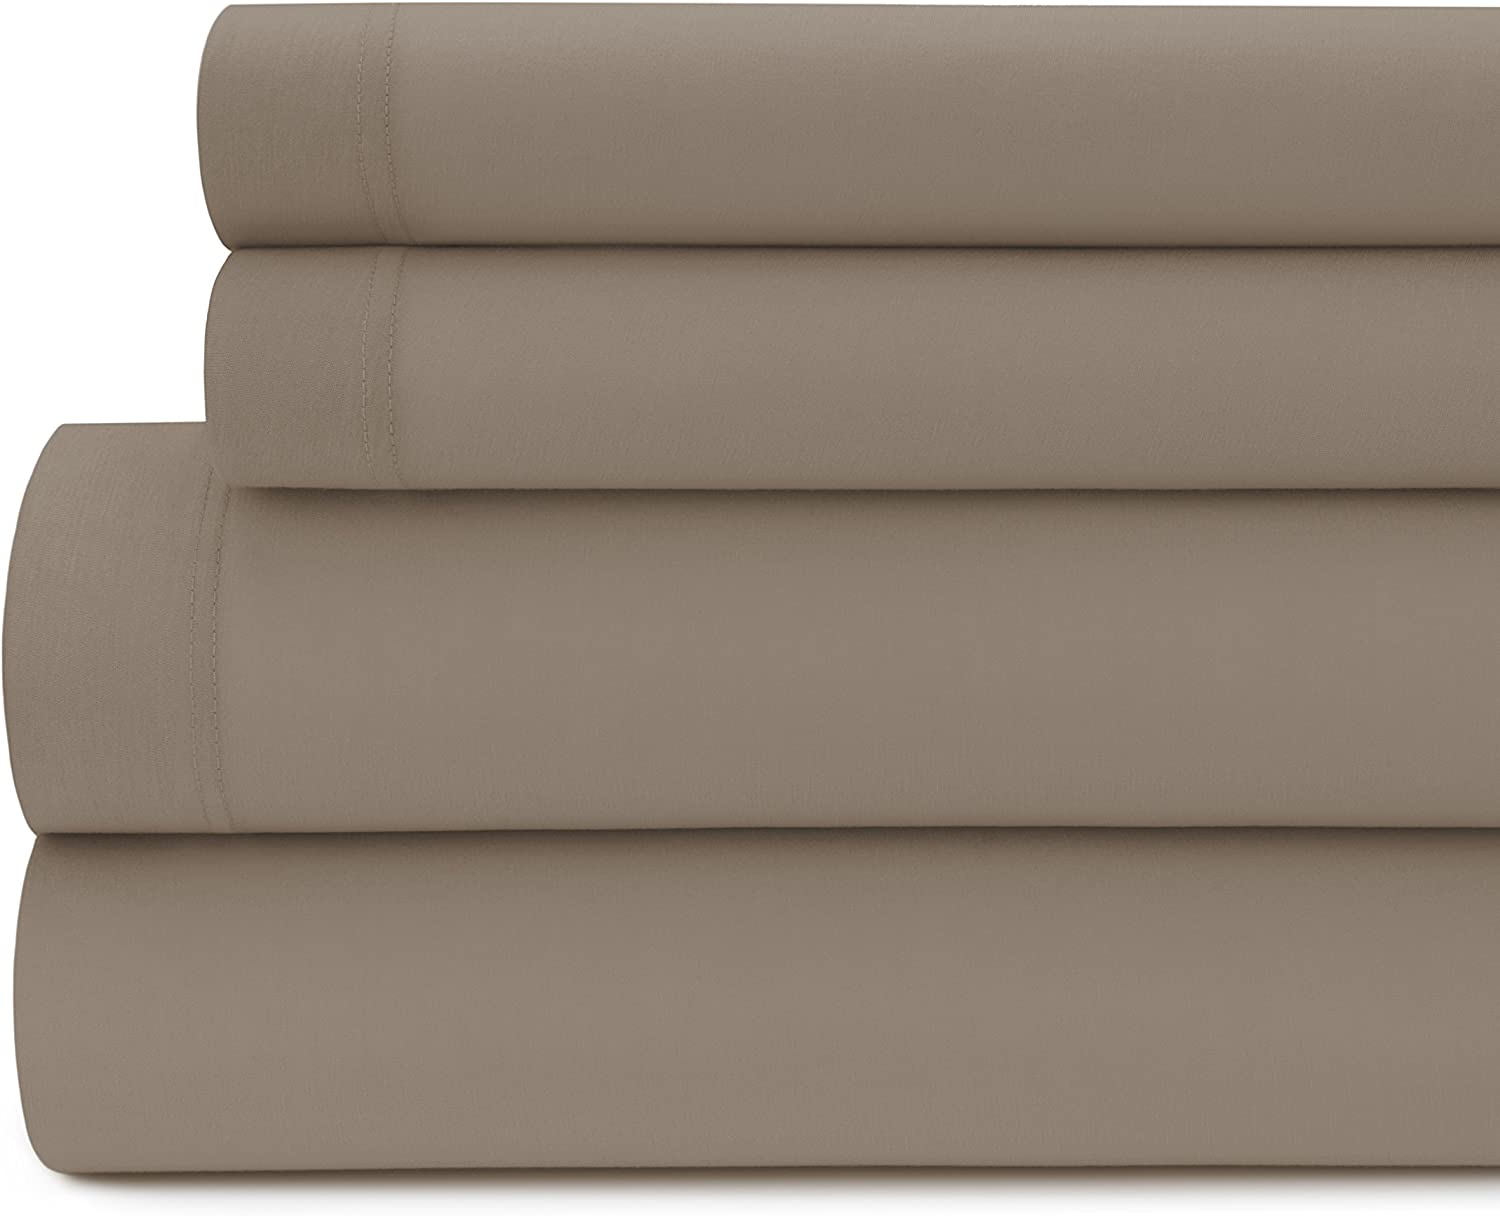 Briarwood Home Jersey Knit Bed Sheet Set – 100% Modal – Heavy Weight, T-Shirt Soft, Cozy 4 Piece Bedding – Fade & Wrinkle Free, All Season Breathable Sheets (Queen, Taupe)